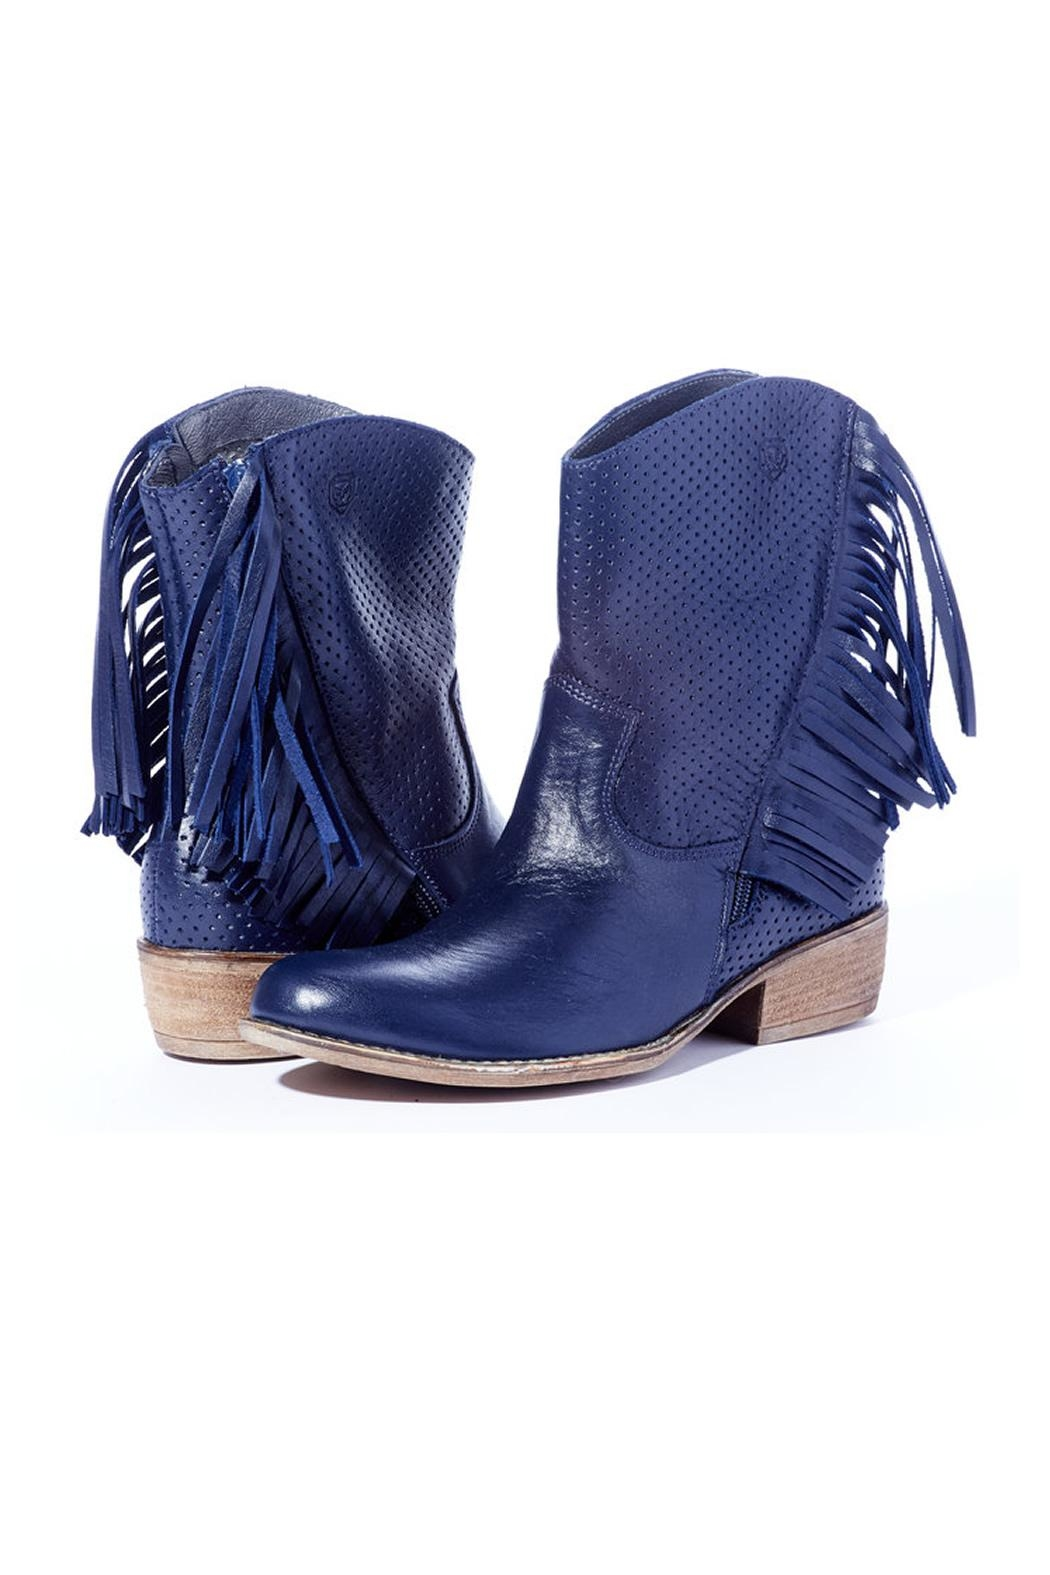 Navy Fringe Boot